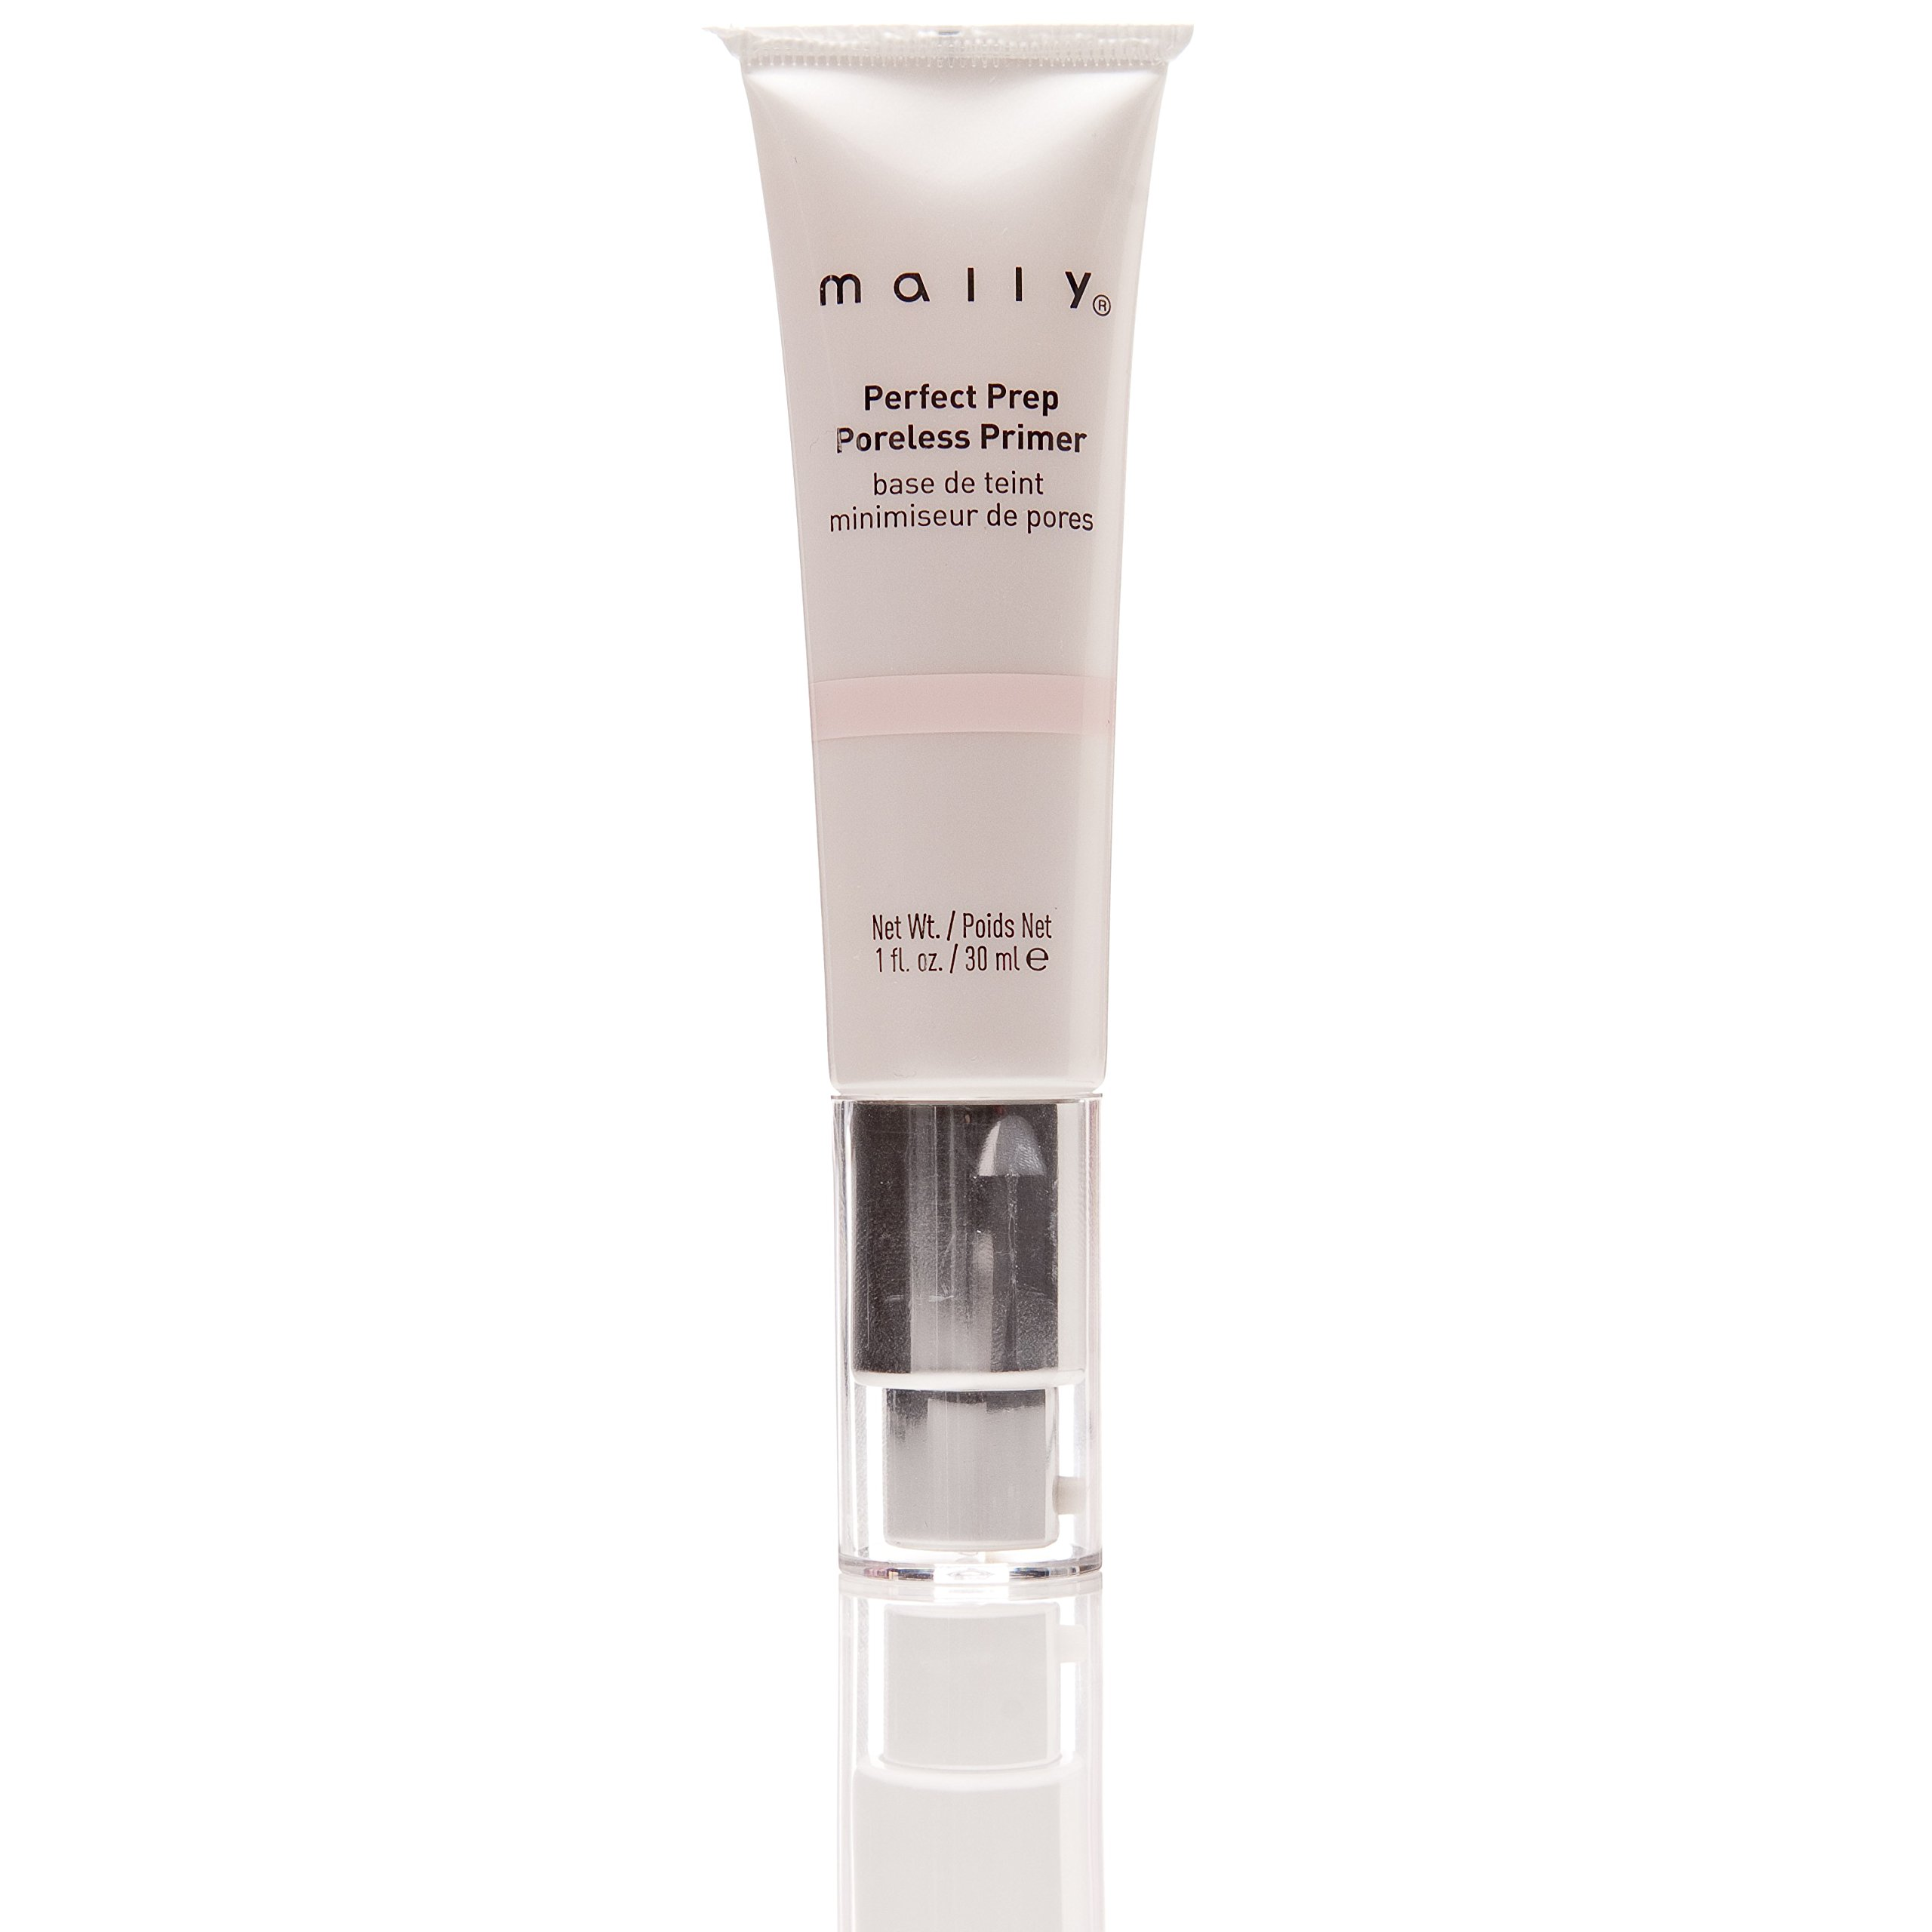 Mally Beauty - Perfect Prep Poreless Primer - Hydrates & Minimizes Look Fine Lines, Wrinkles, Pores - 1 Ounce - MY.2082